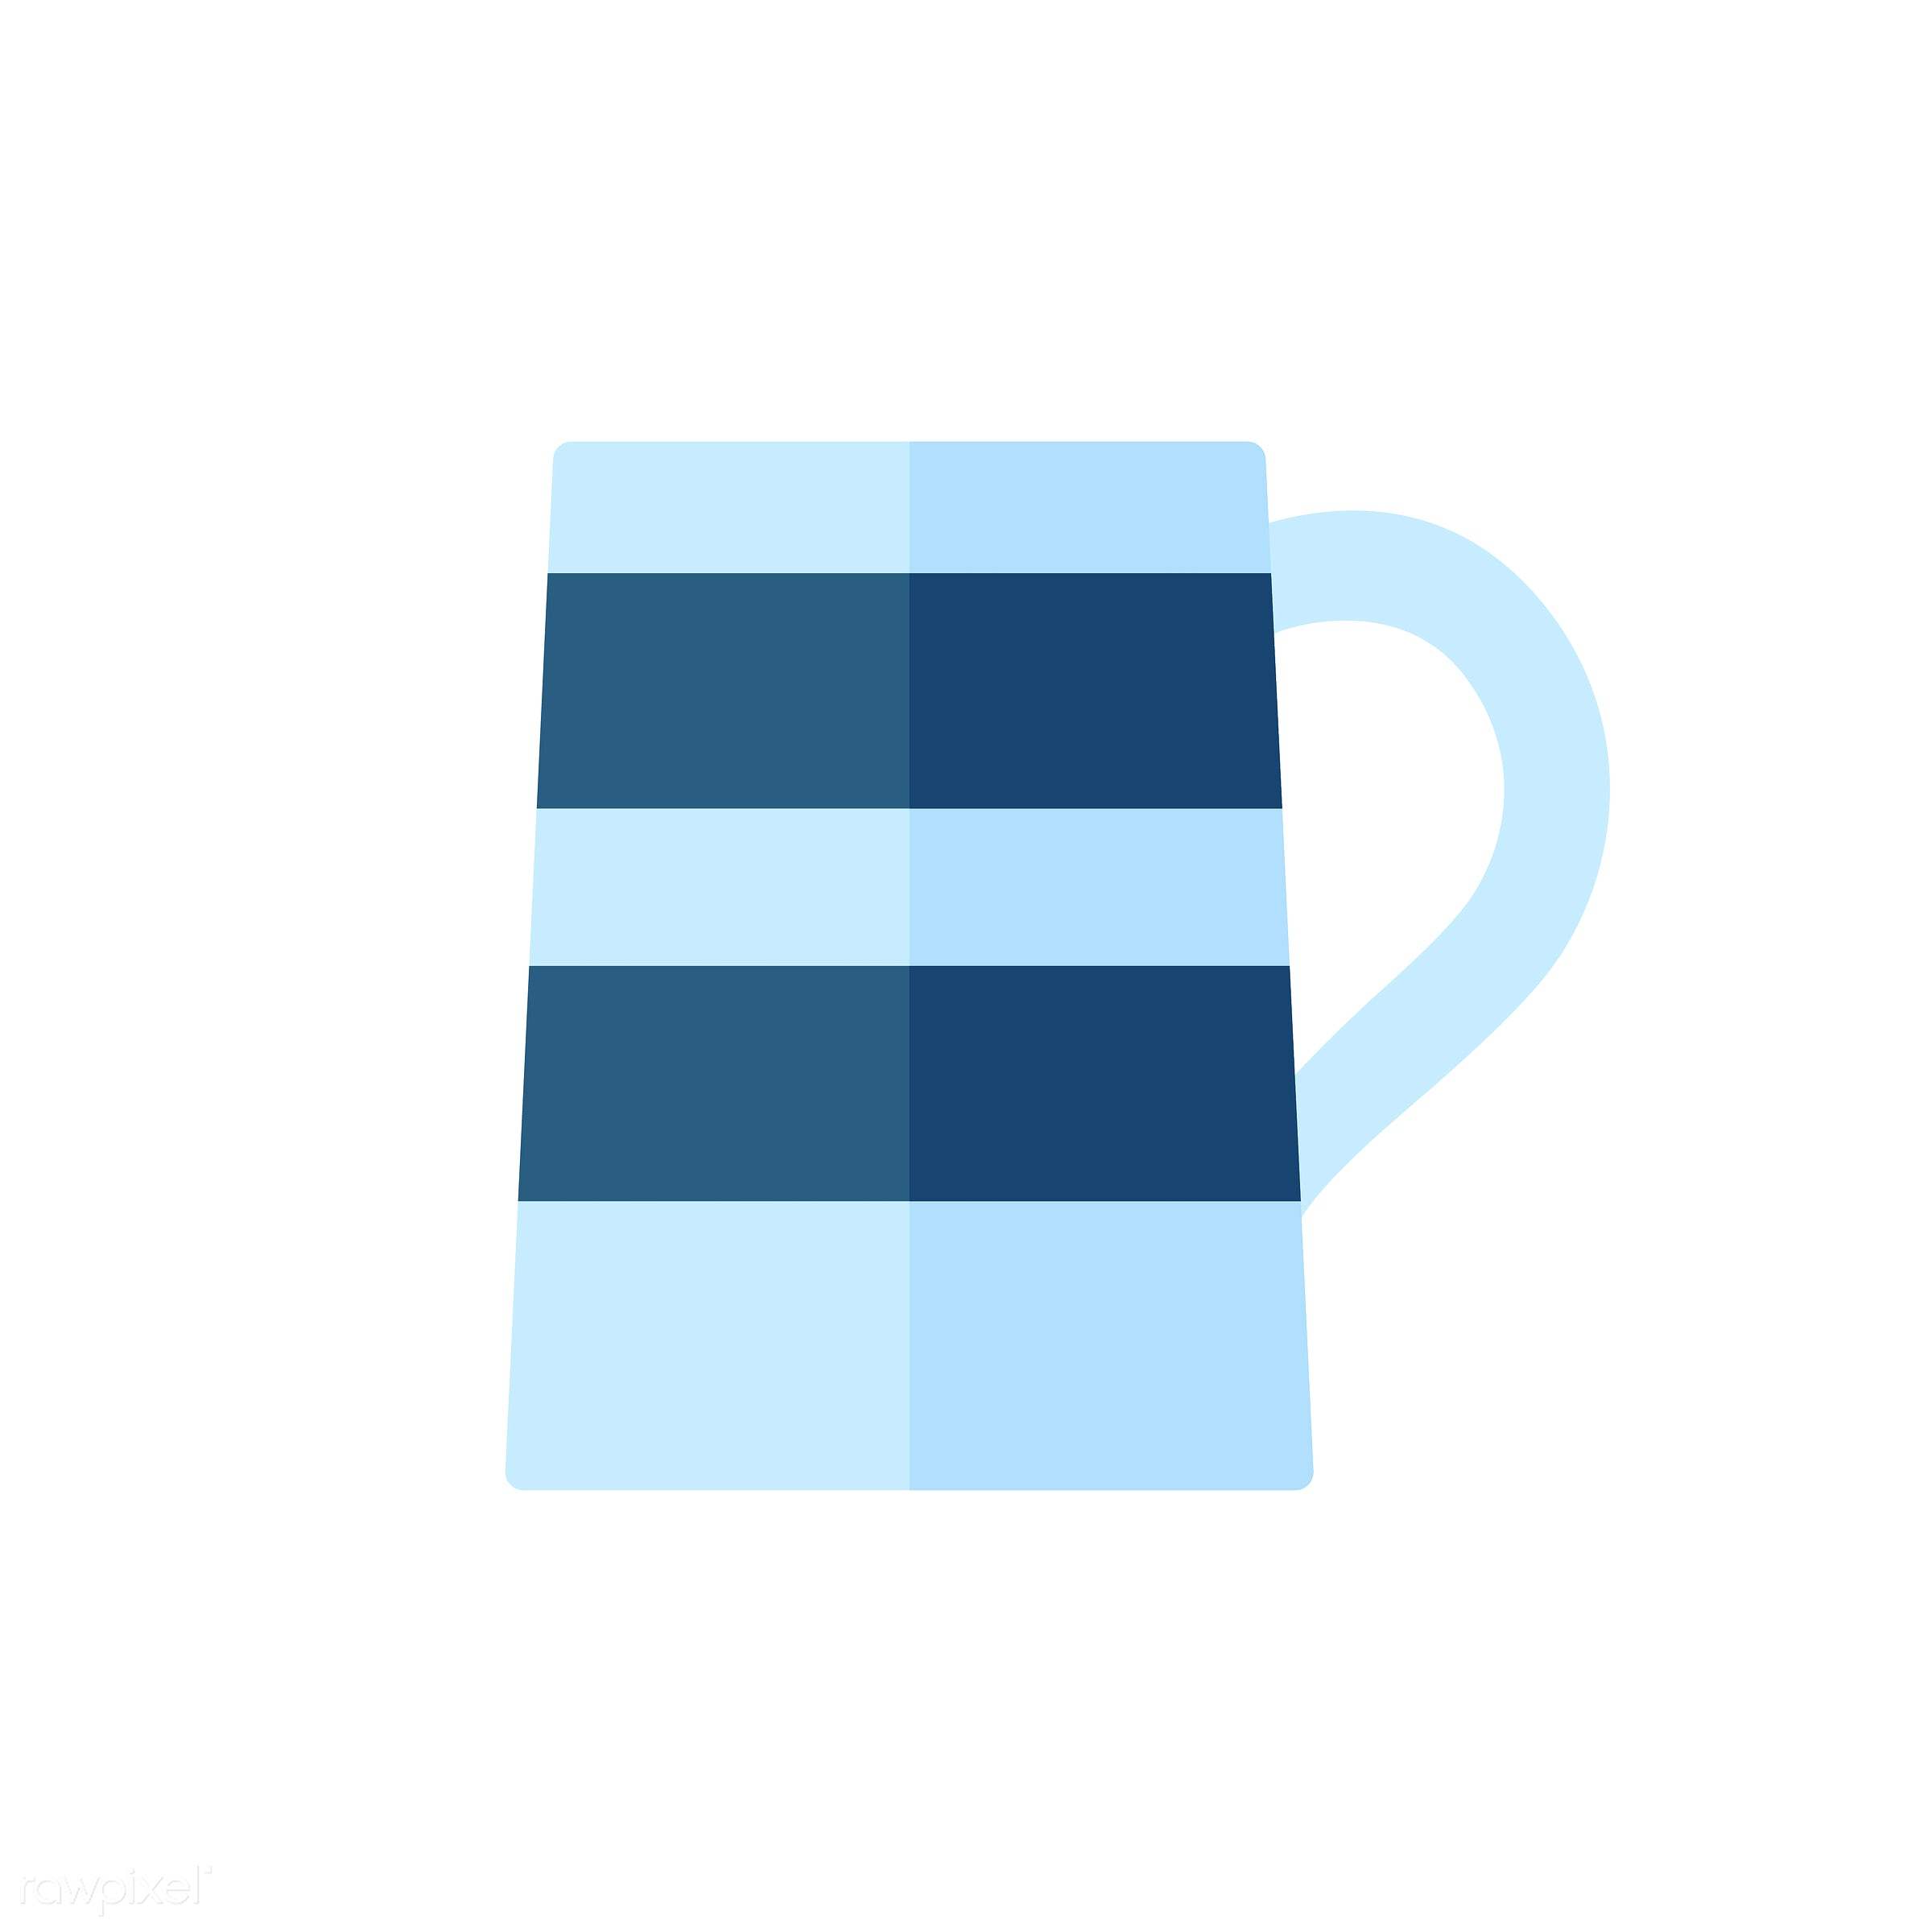 vector, graphic, illustration, icon, symbol, colorful, cute, drink, beverage, water, blue, mug